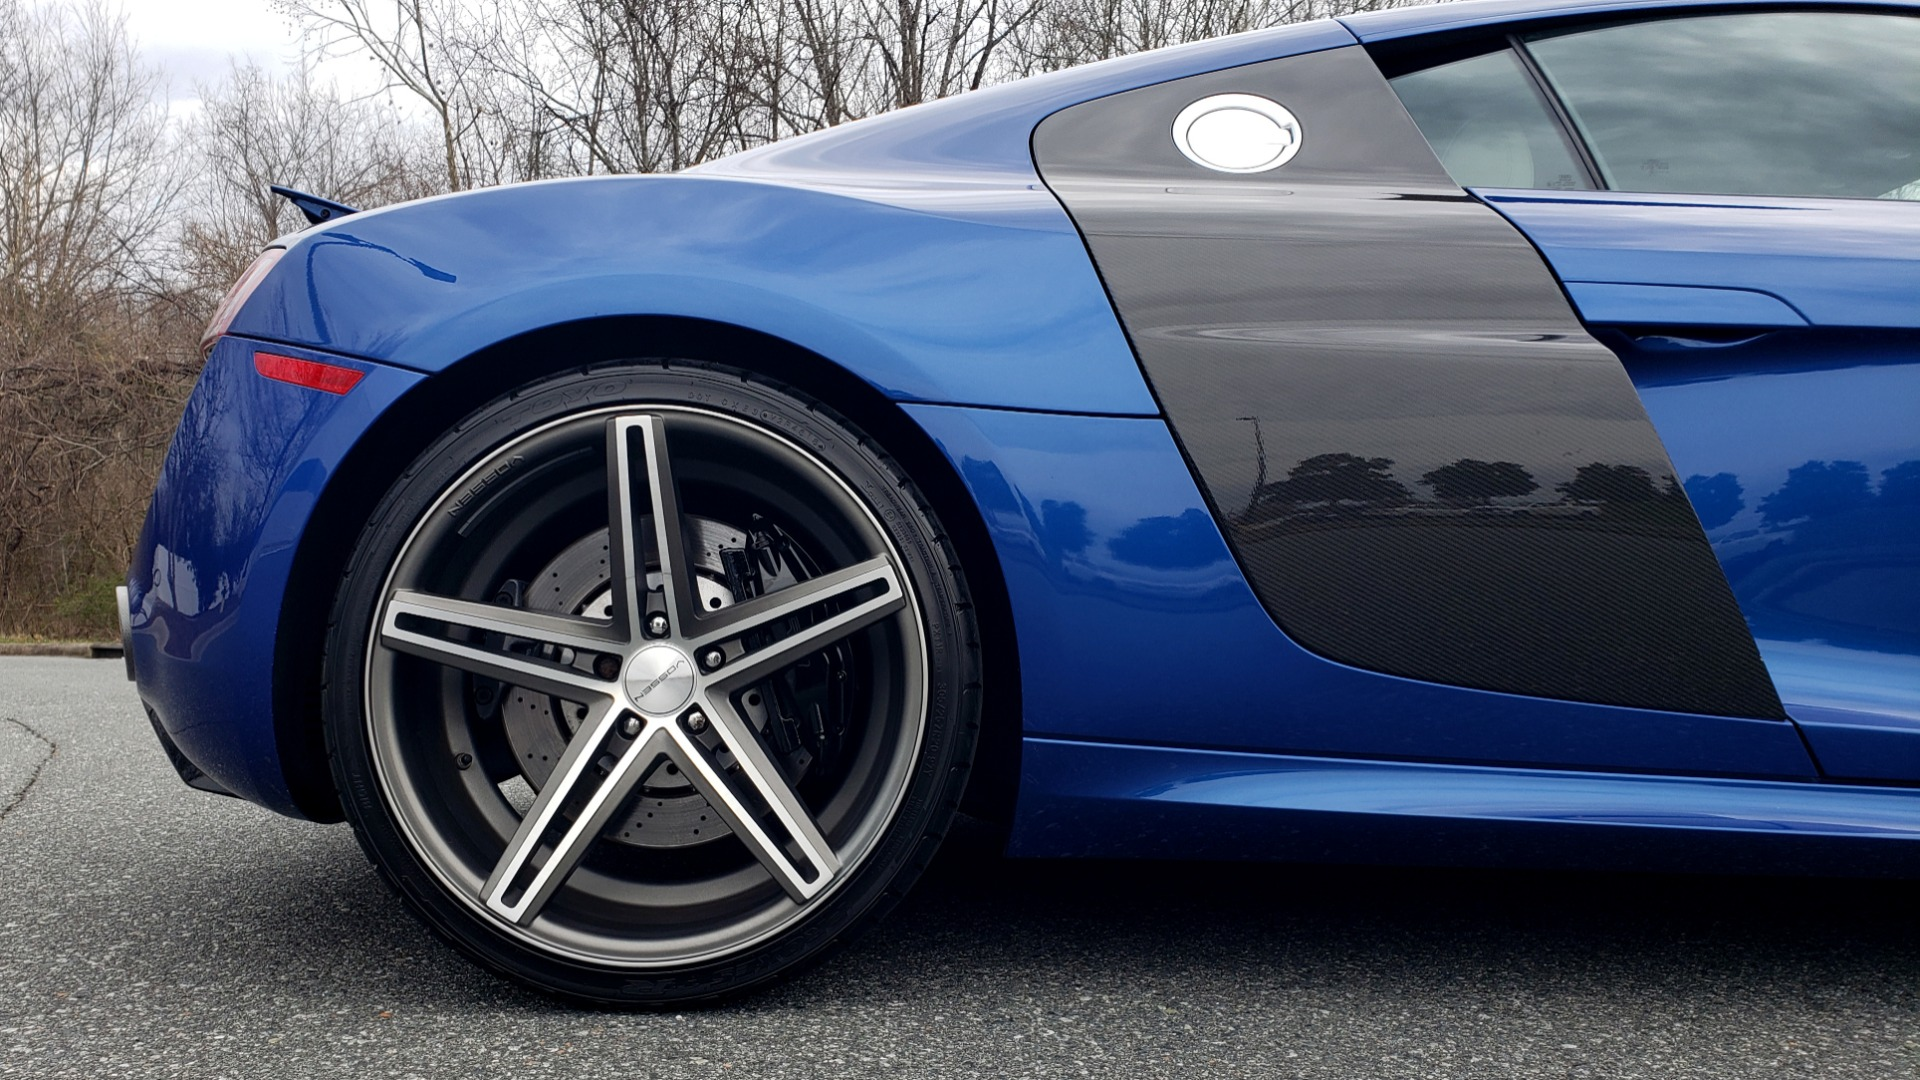 Used 2010 Audi R8 5.2L V10 / AWD / NAV / B&O SND / HTD STS / CUSTOM EXH & WHEELS for sale $78,000 at Formula Imports in Charlotte NC 28227 73